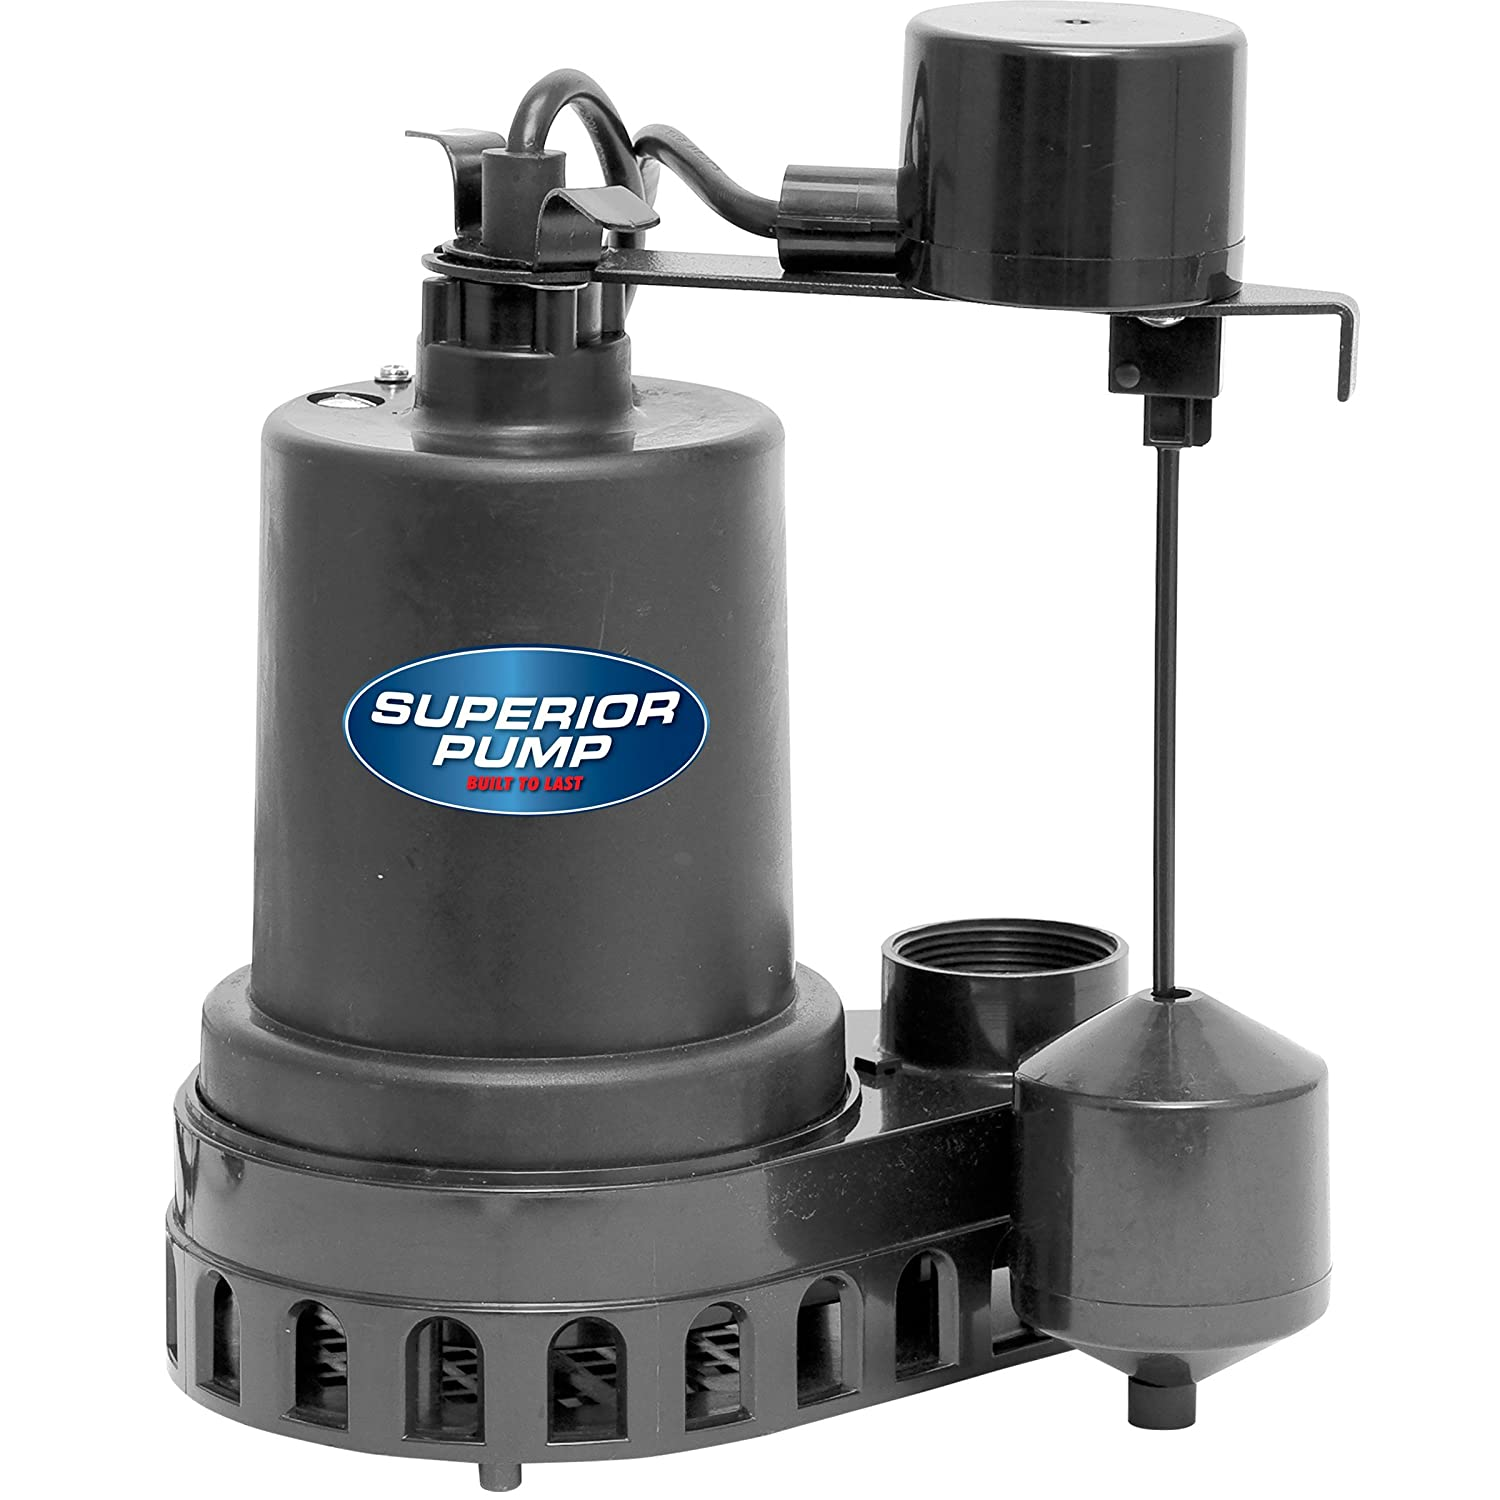 Superior Pump 92572 Thermoplastic Sump Pump with Vertical Float Switch, 1/2 HP